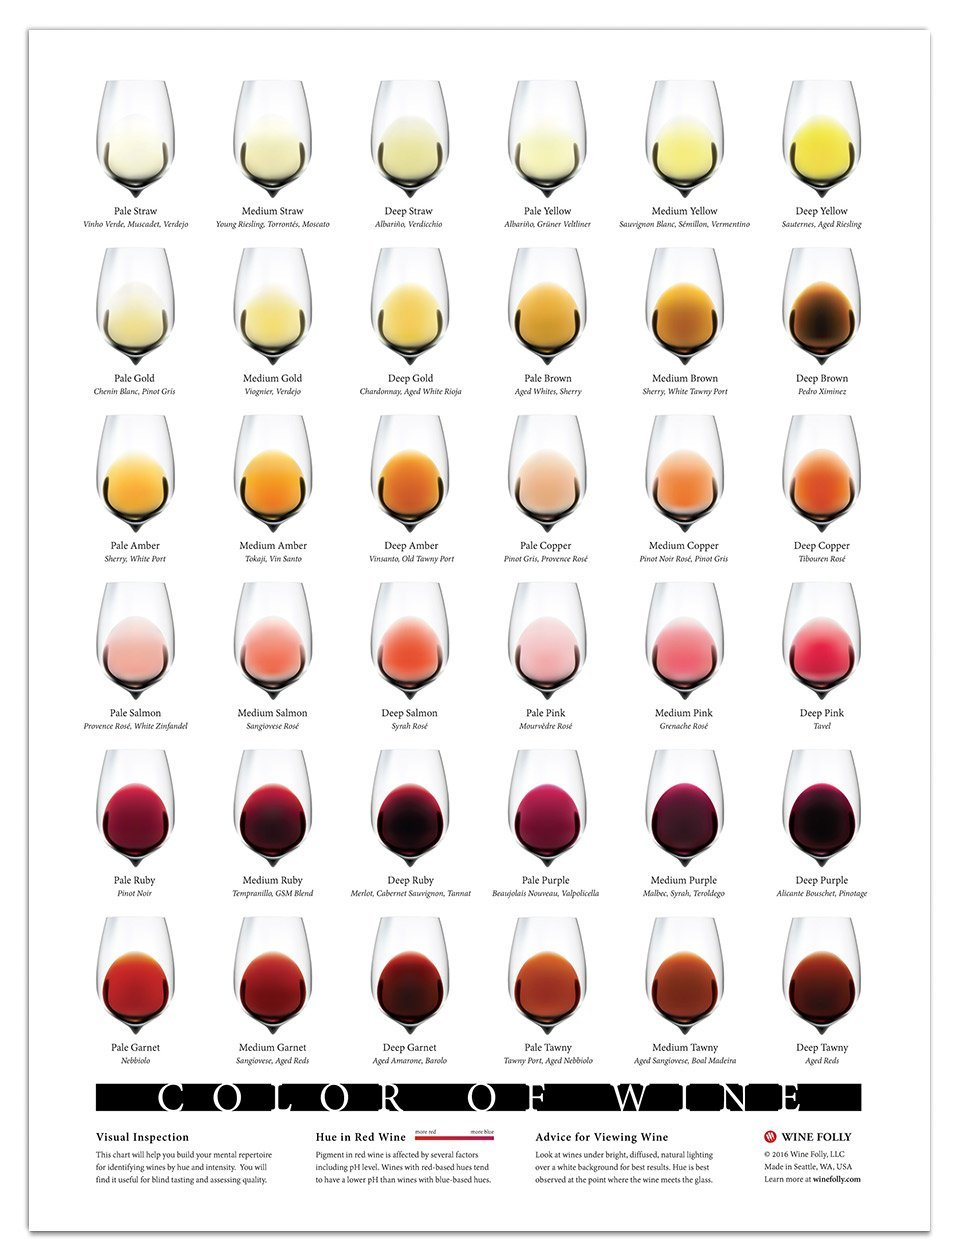 Colour of Wine Poster by Winefolly